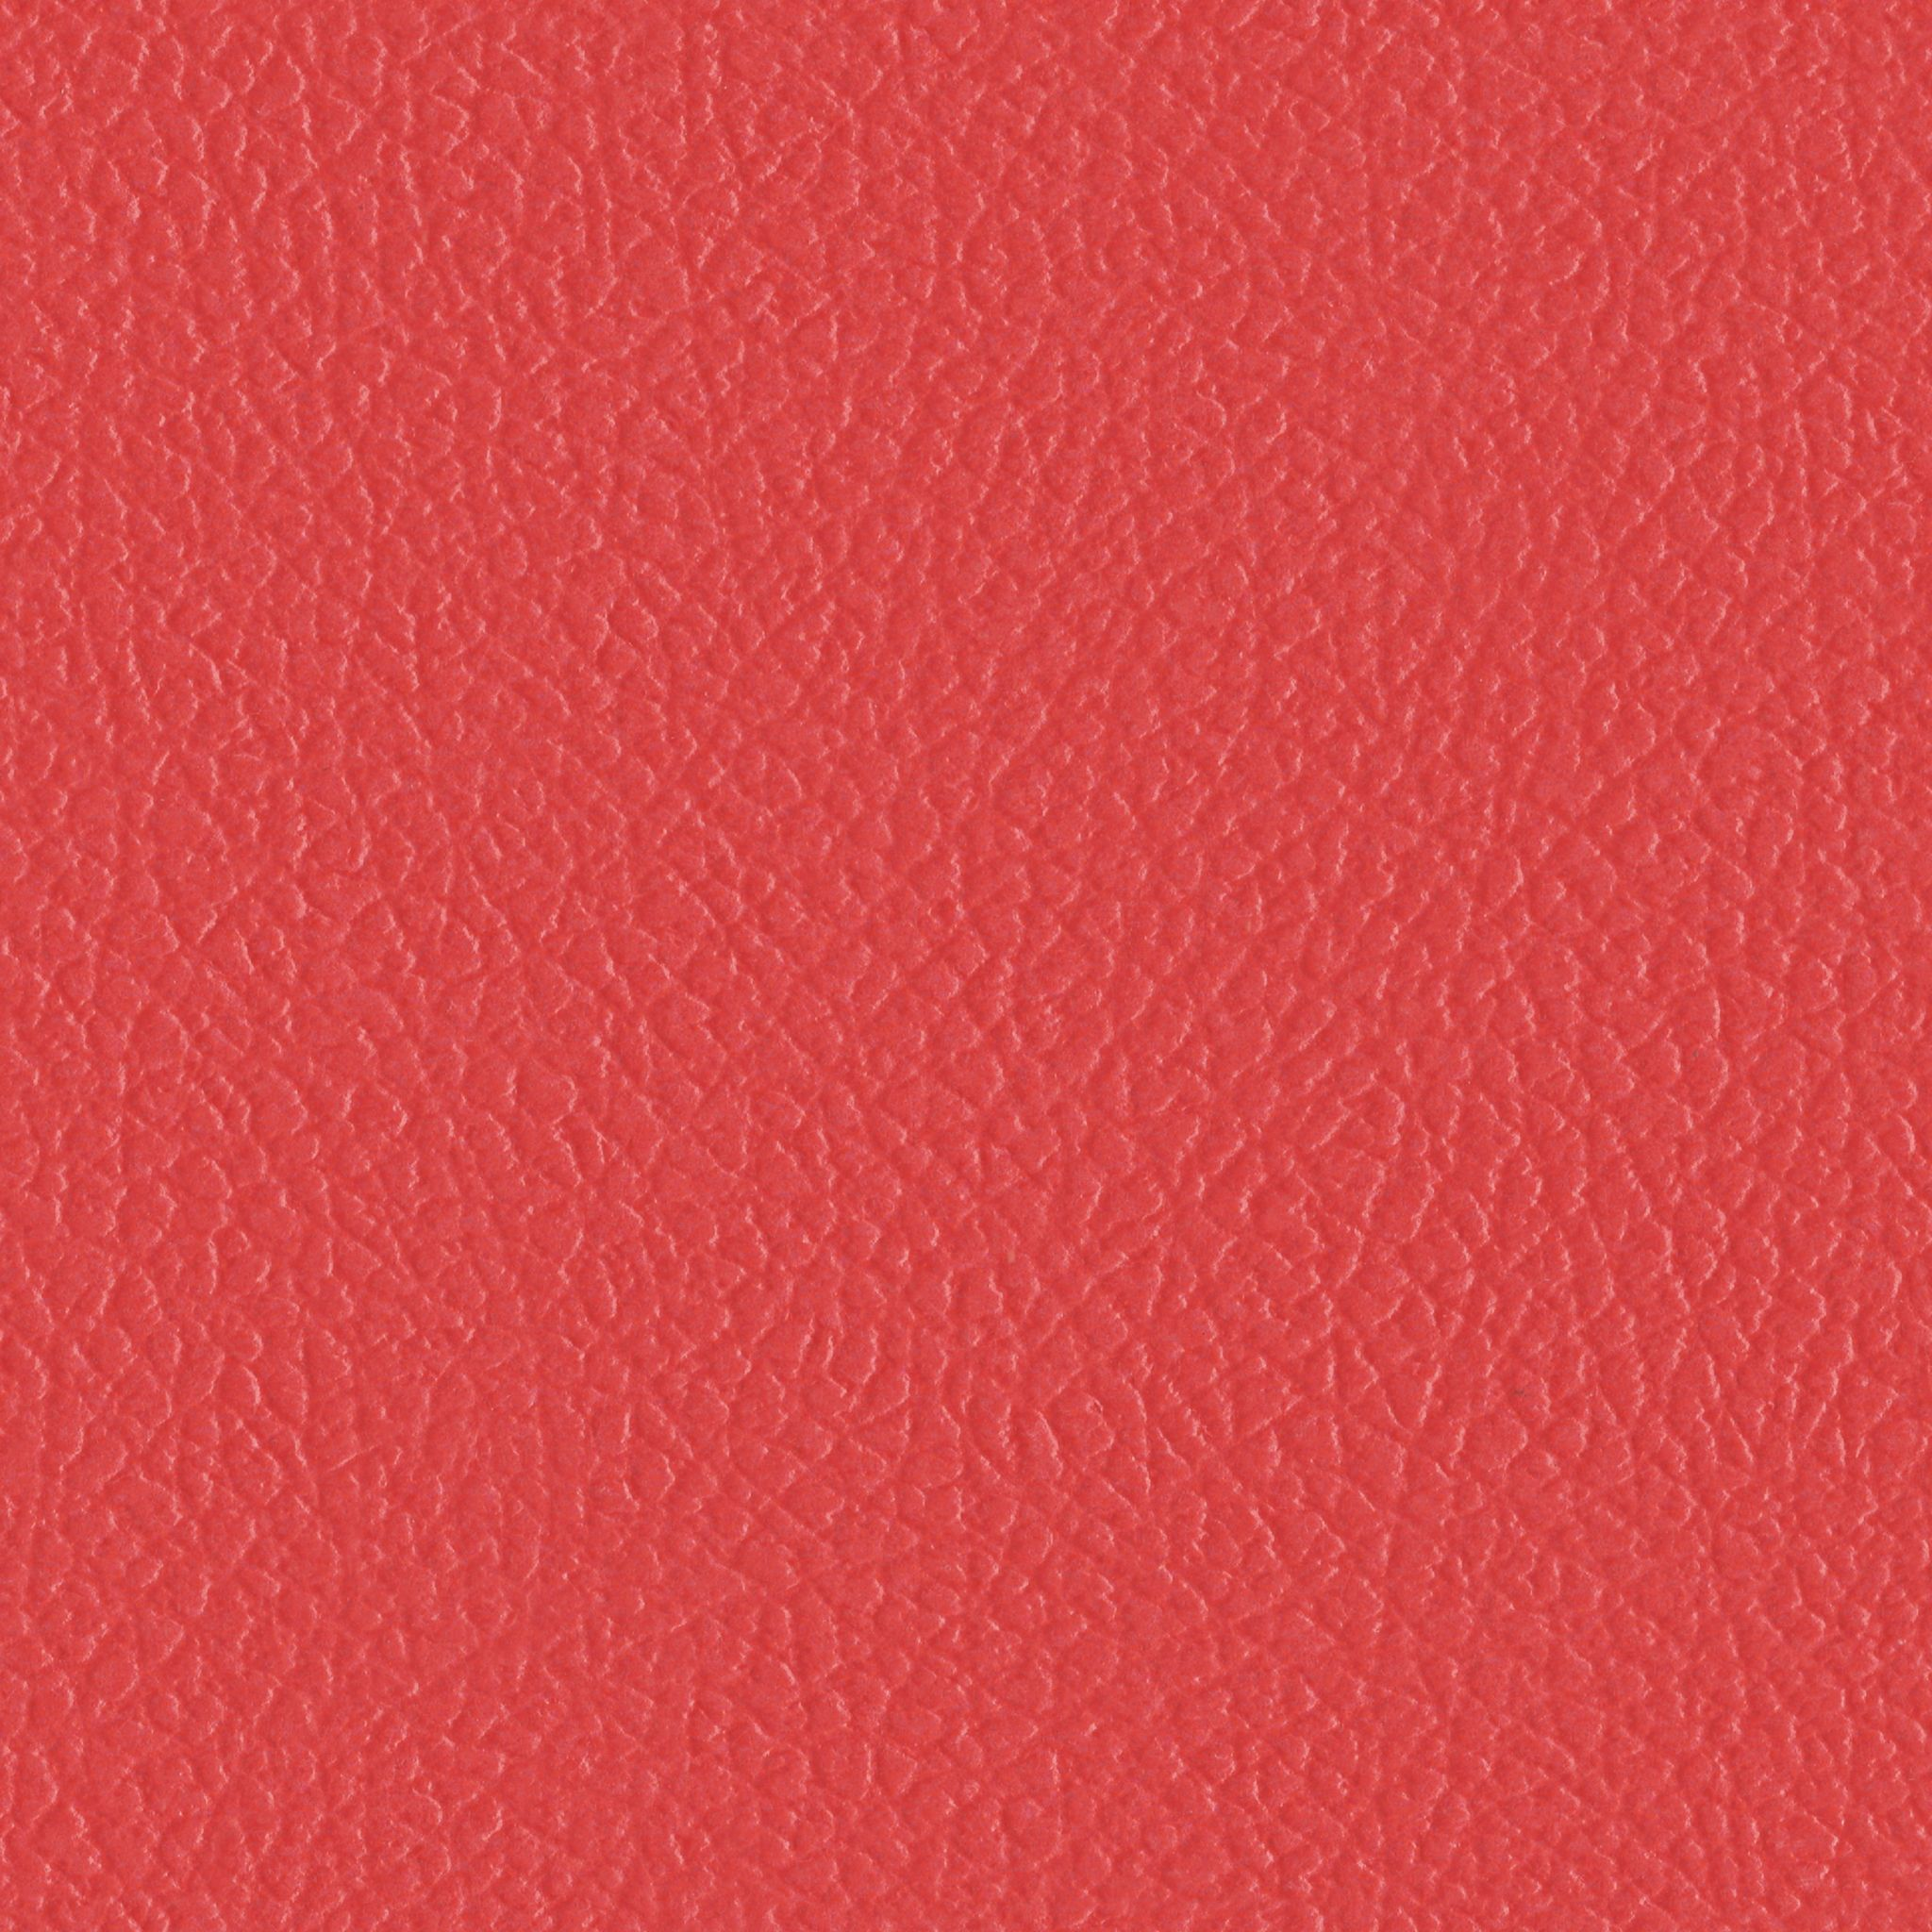 Hardcover Book Texture : Zero cc tileable red book hardcover bumps texture scanned